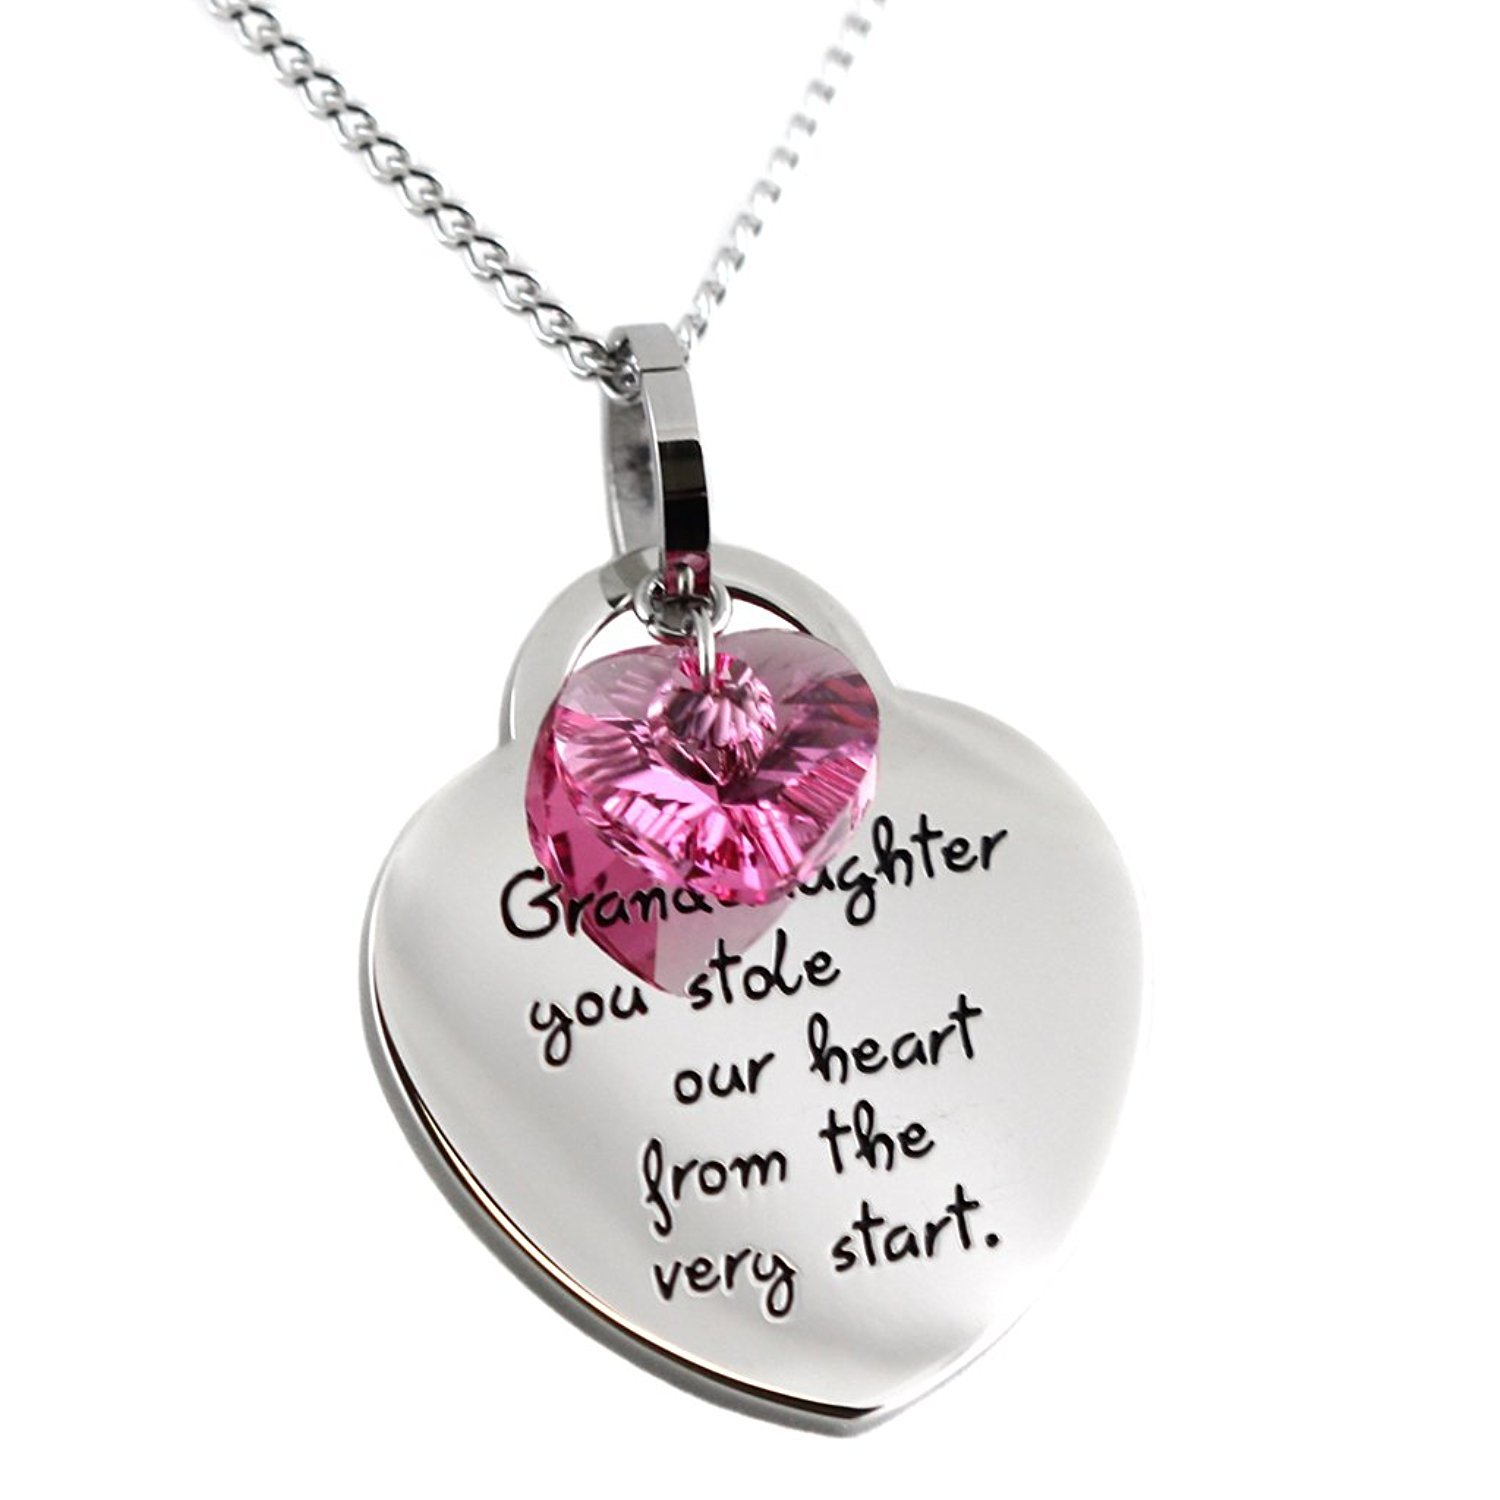 'Grandaughter, You Stole Our Heart from the Very Start' Pendant Necklace 'Grandaughter Steal My Heart B06XDY6BYH_US